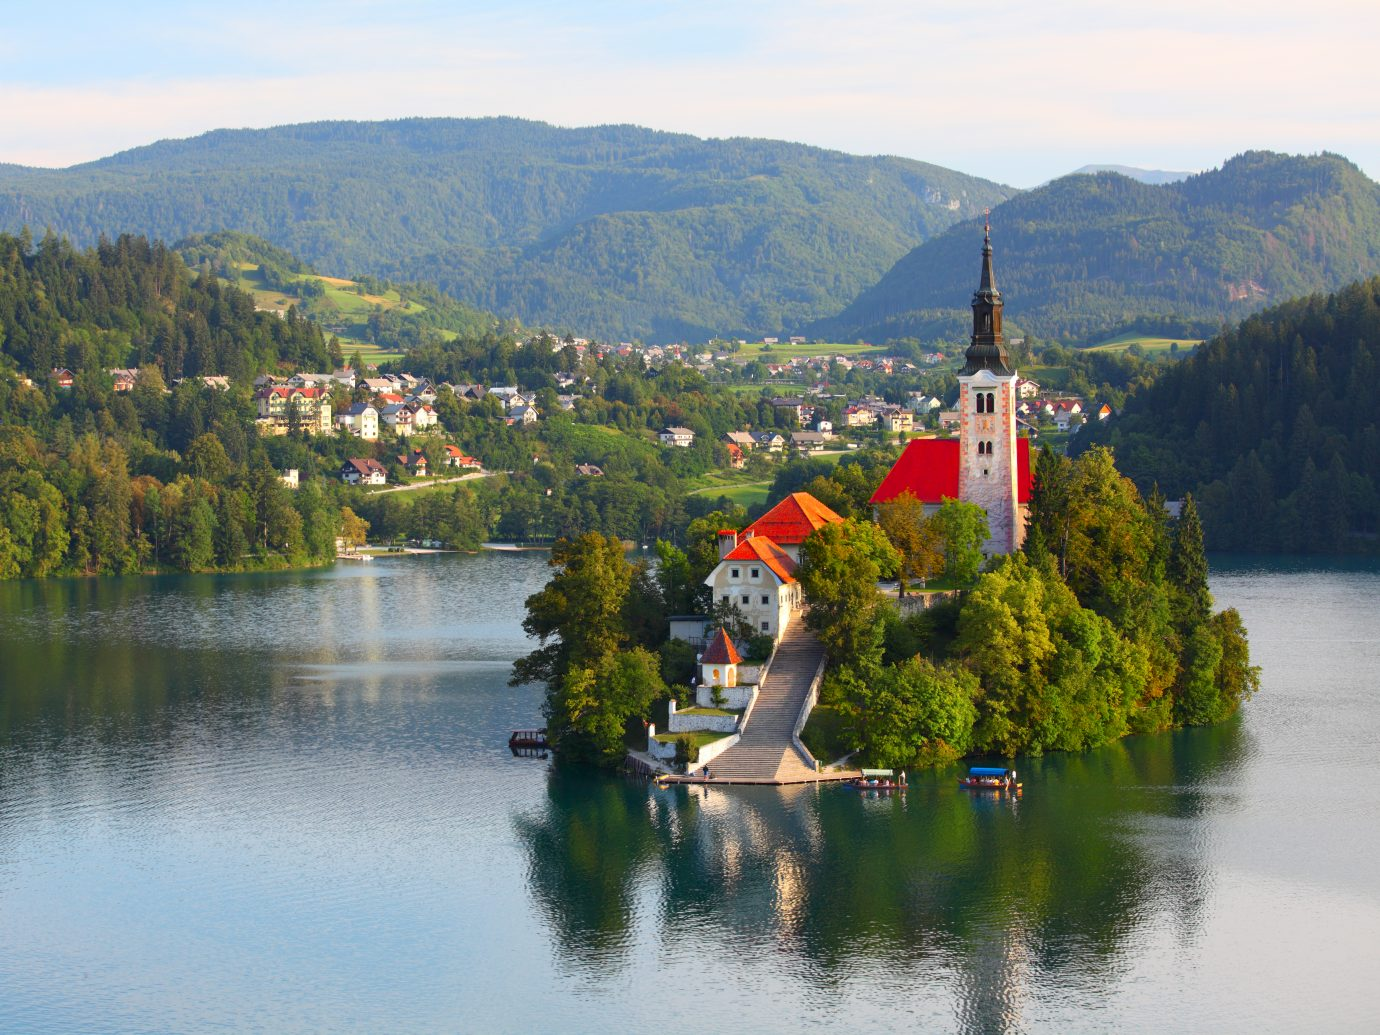 Santa Maria Church catholic church situated on an island on Bled lake